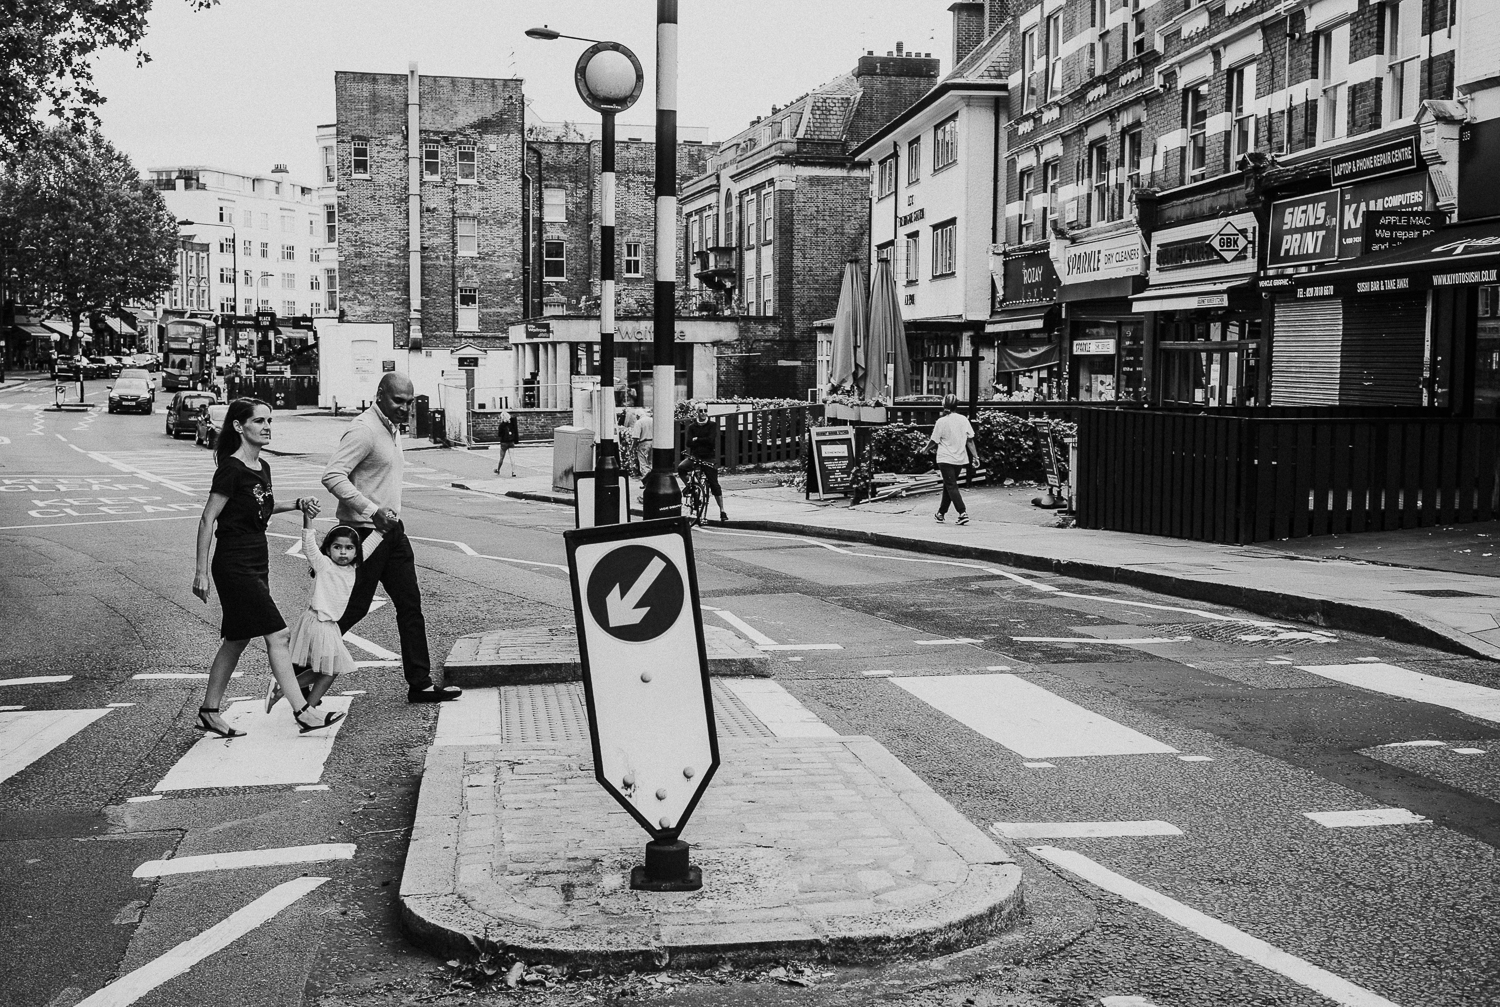 London family photography 2020 black and white photo of parents and young girl pedestrian crossing